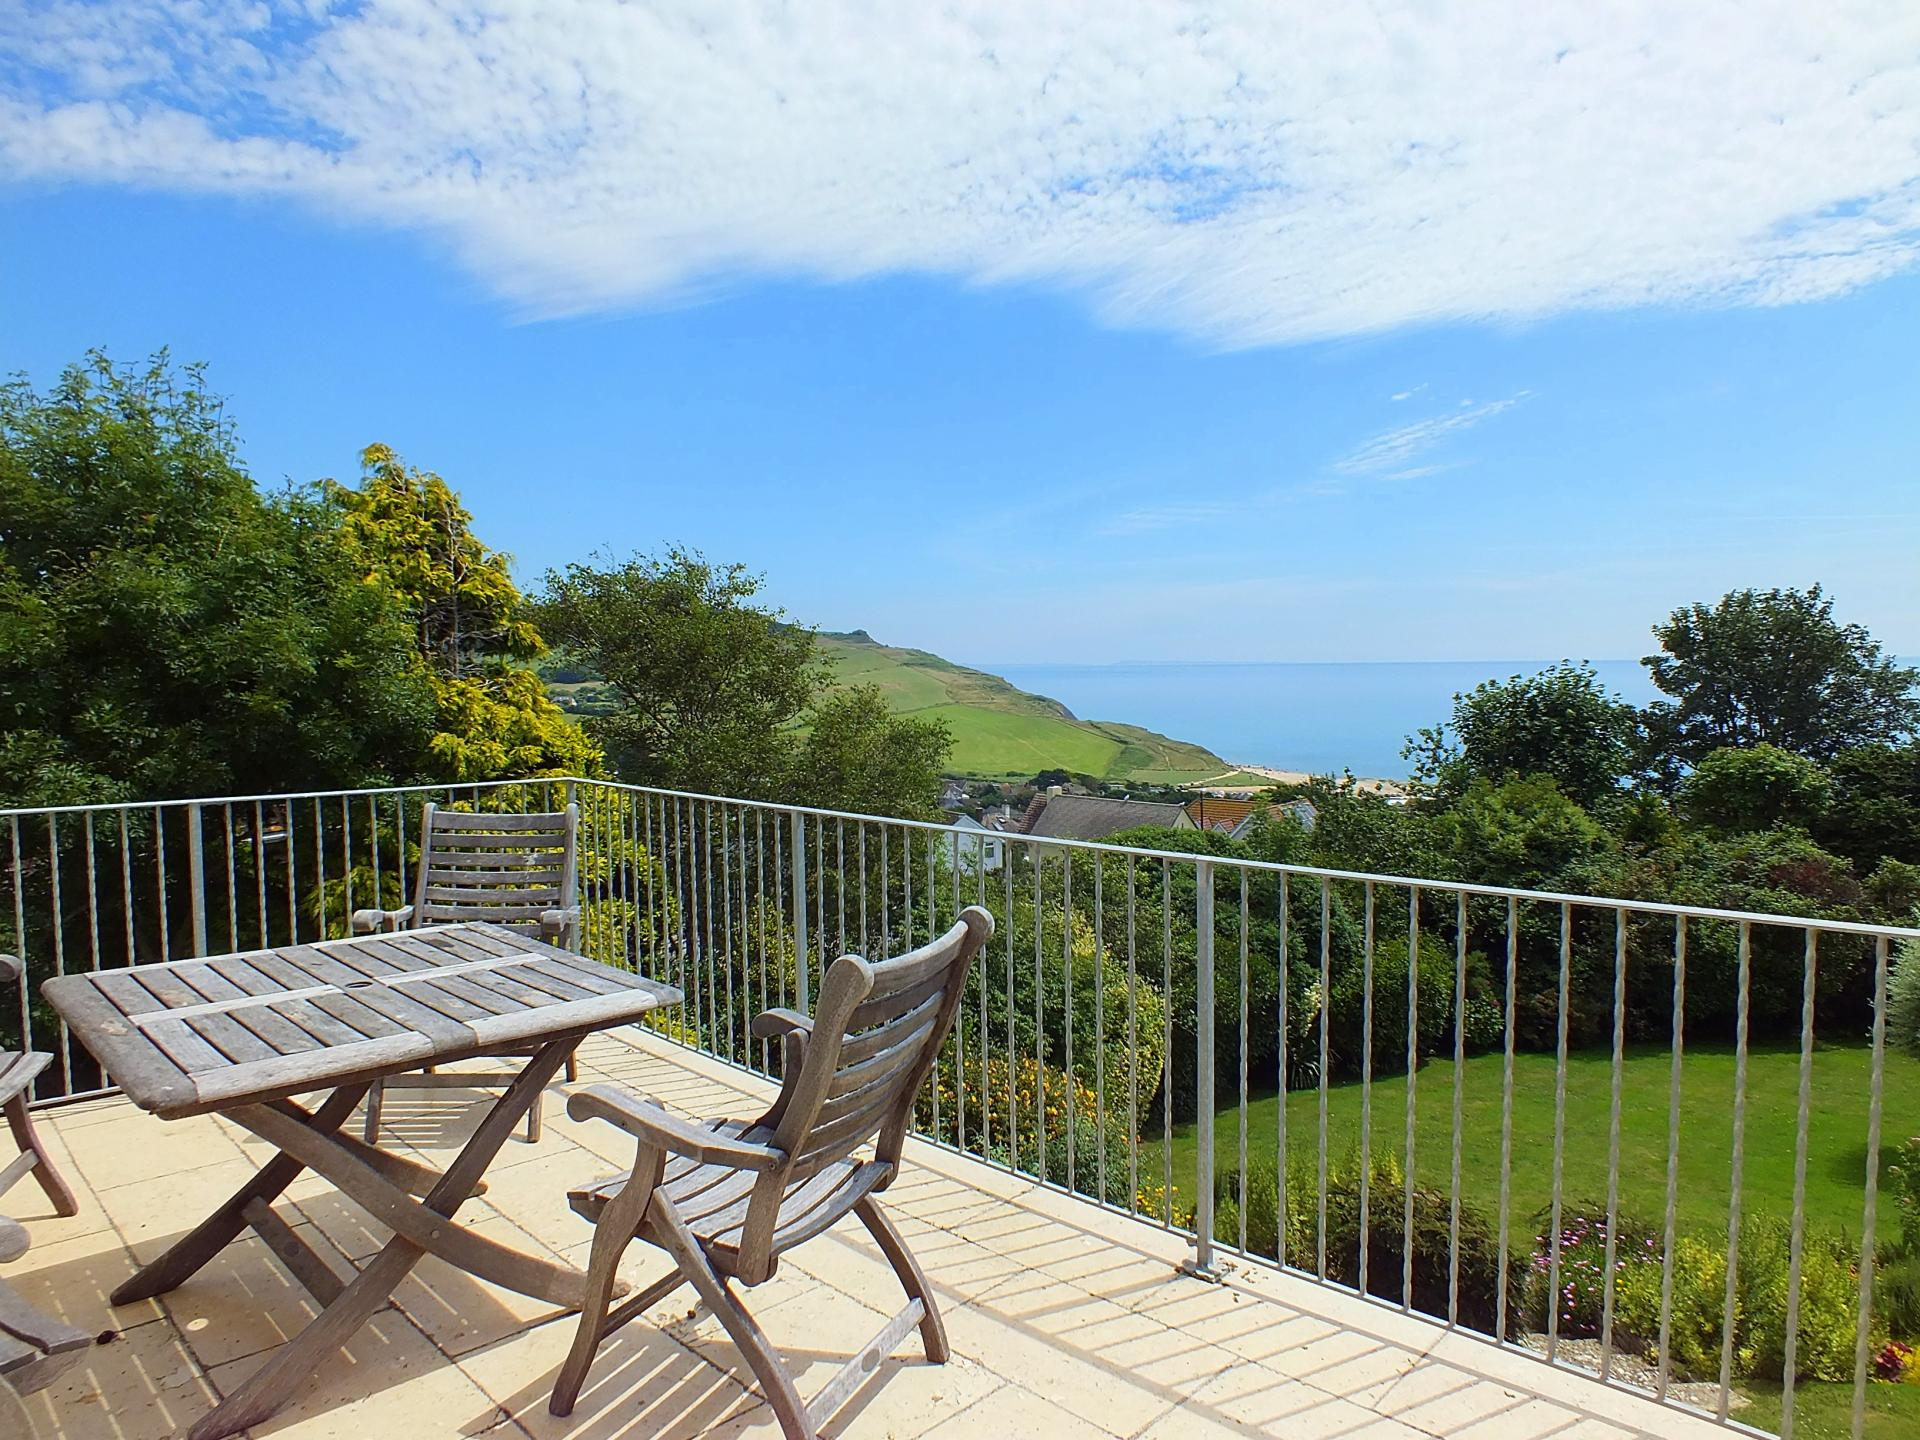 3 Bedrooms Detached House for sale in Downside Close, Charmouth DT6 6BH